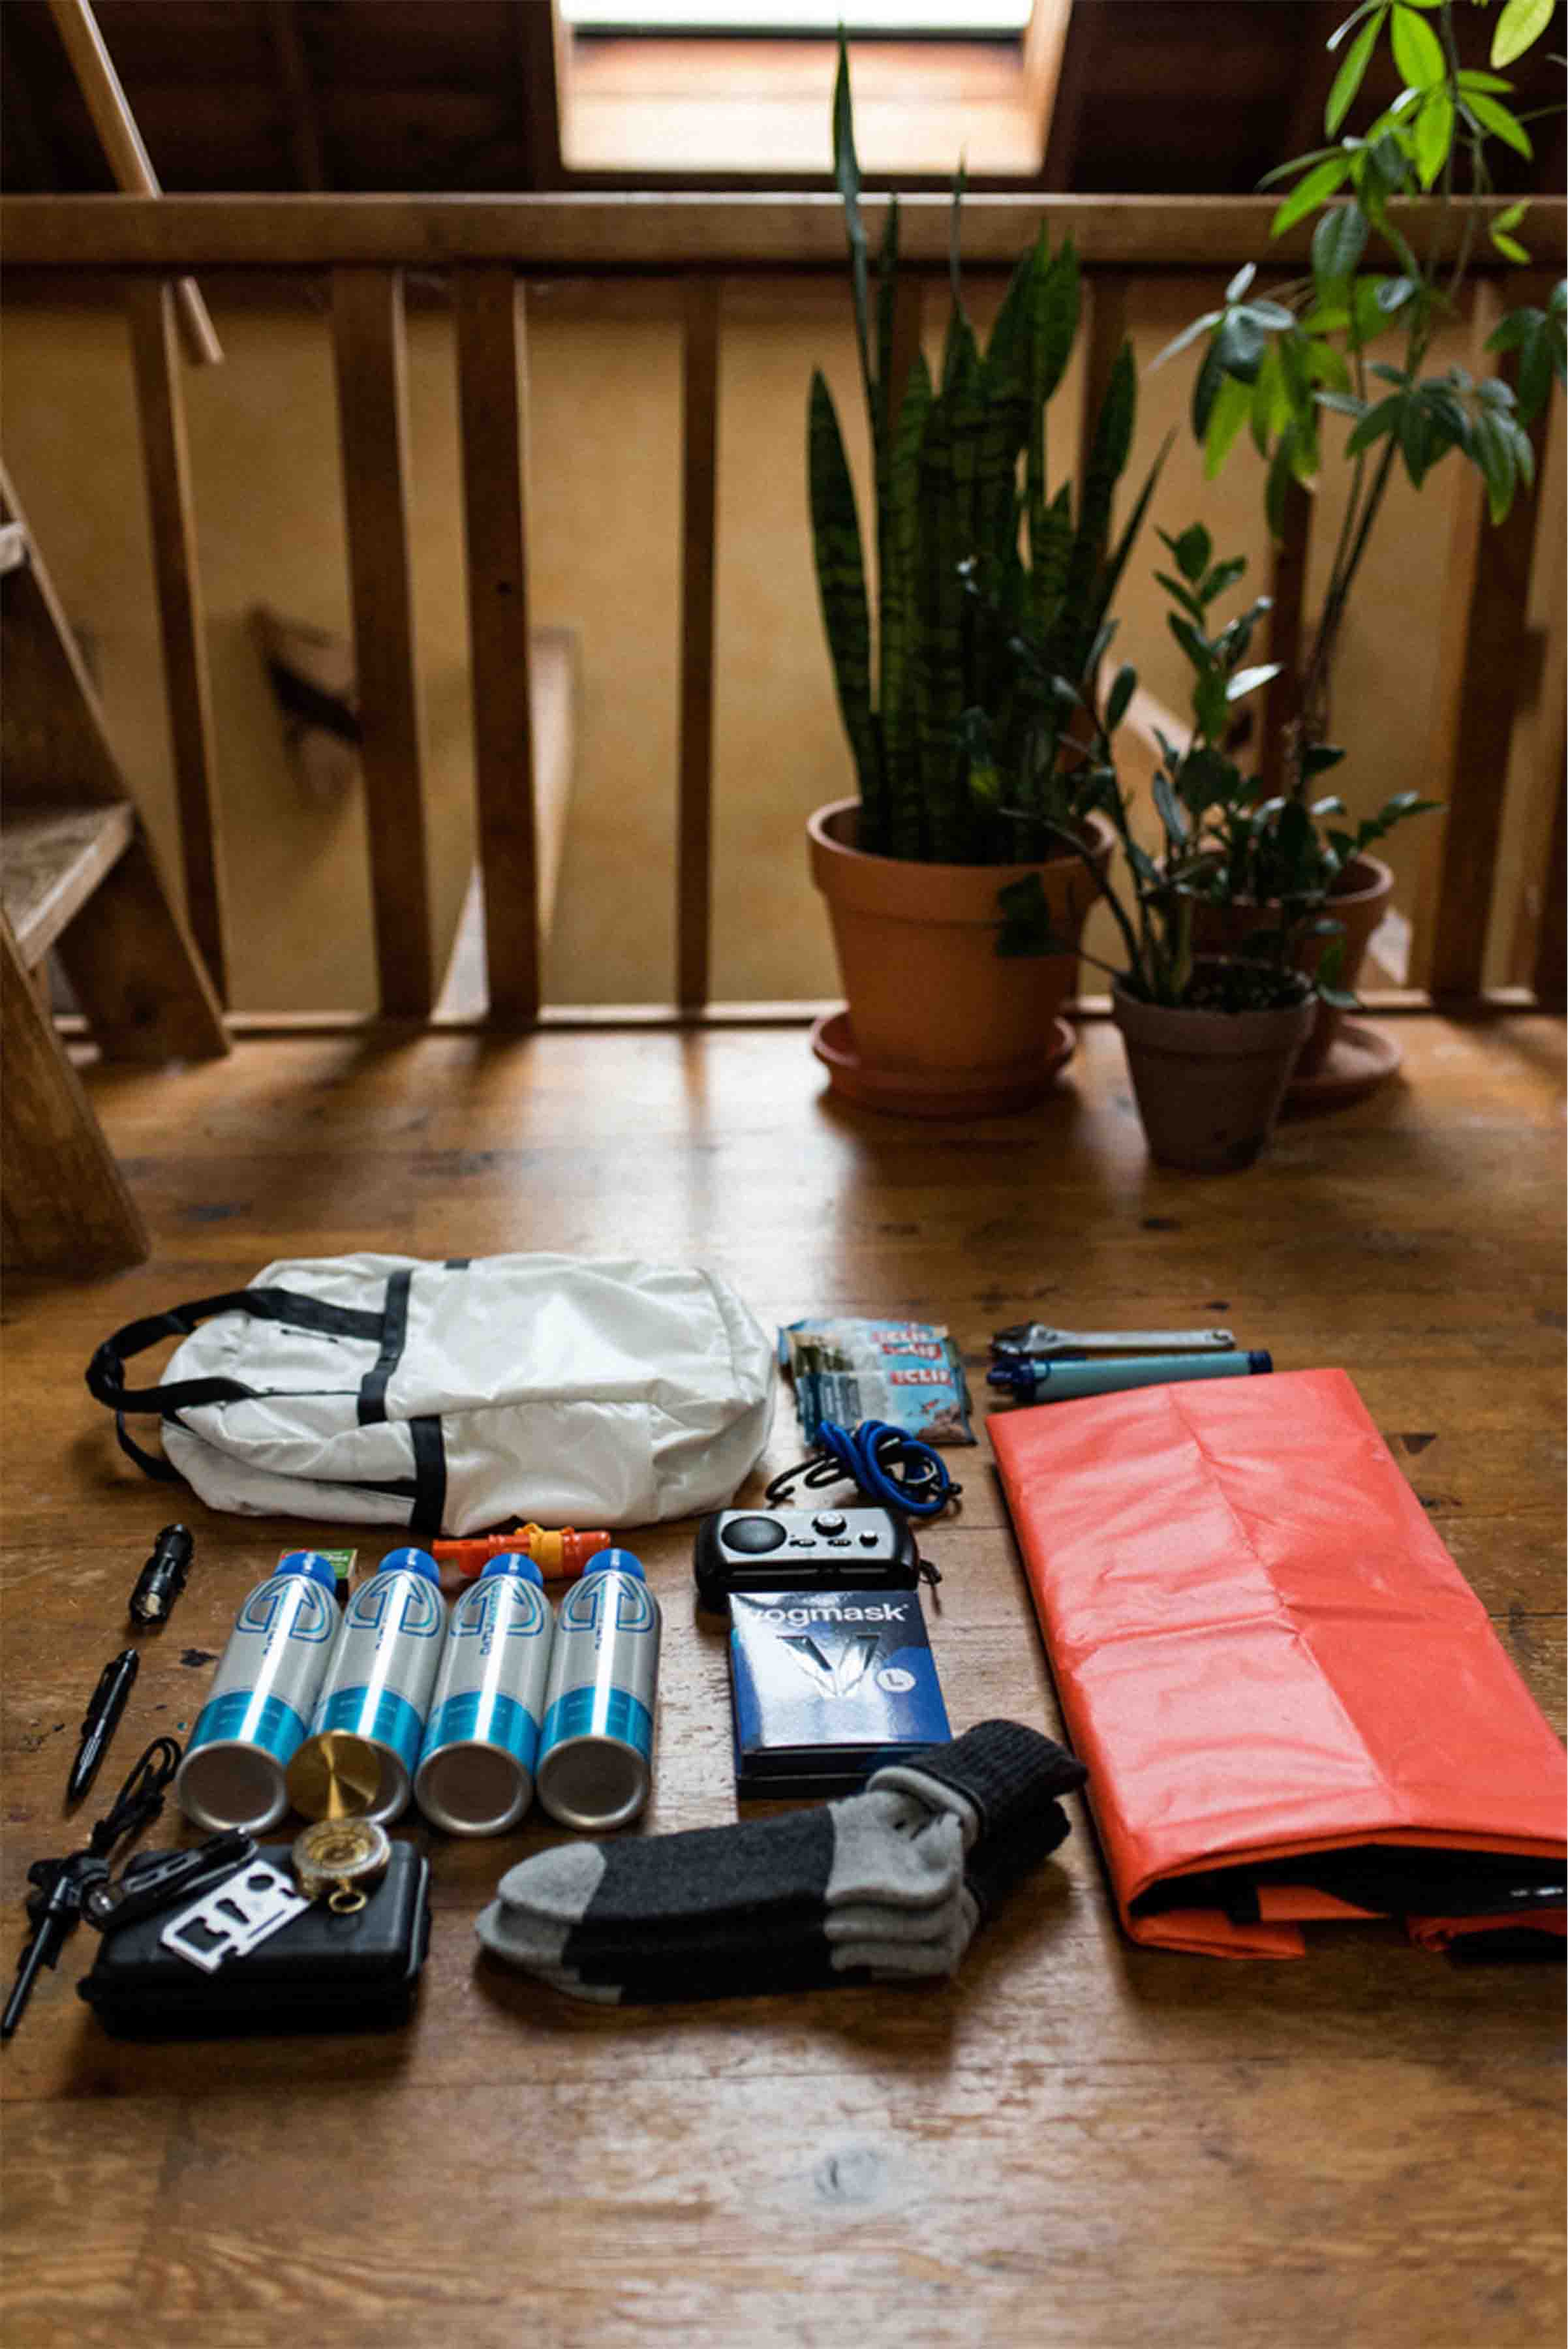 How to build a zer owaste emergency kit from www.goingzerowaste.com #emergencykit #emergency #zerowaste #ecofriendly #beprepared